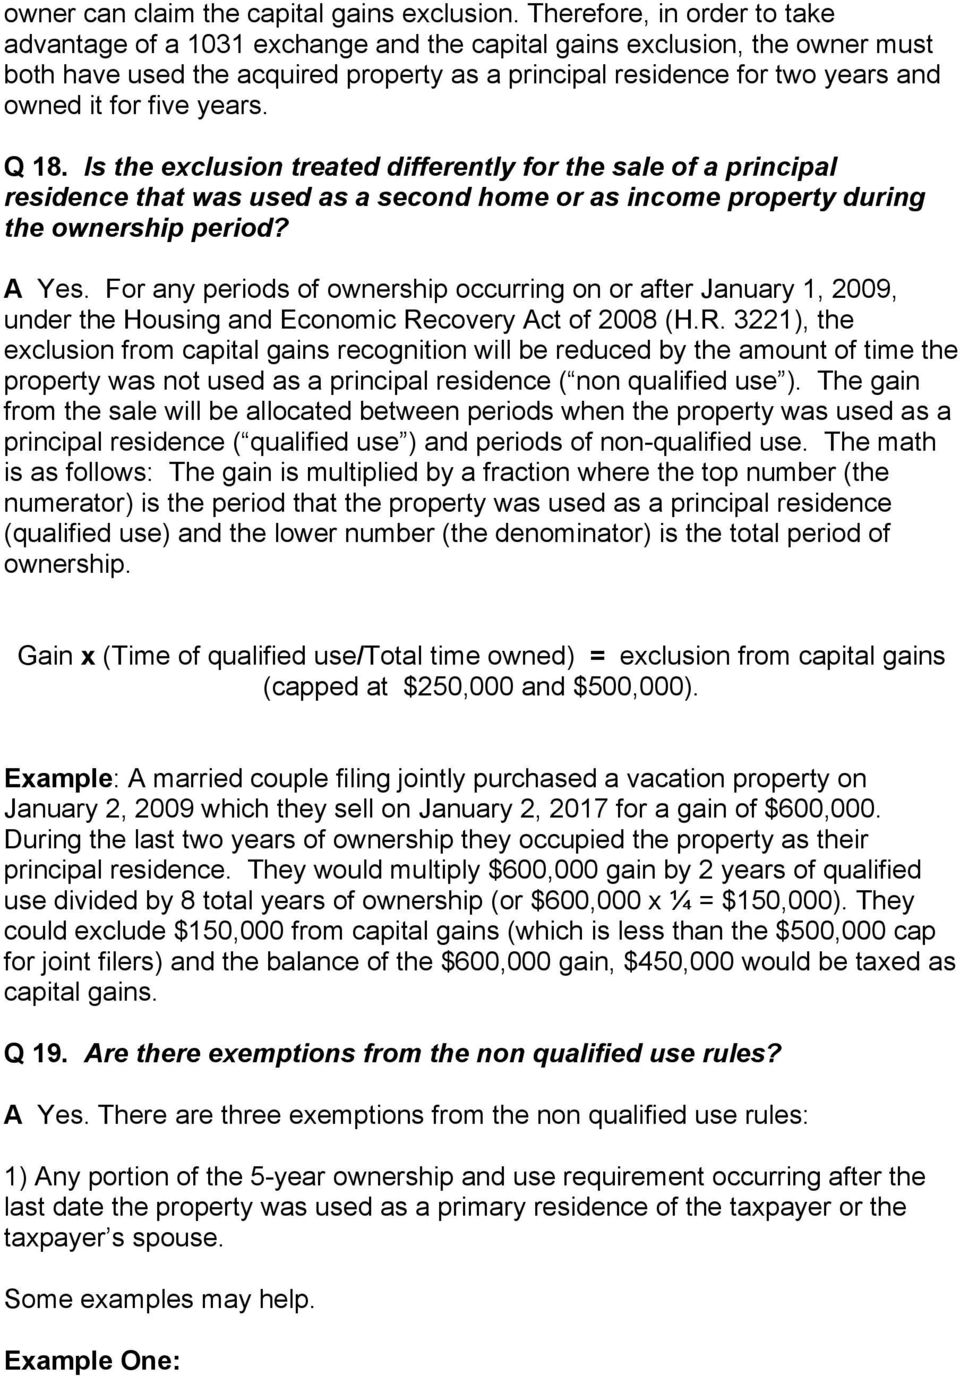 Capital Gains Exclusion Rental Property